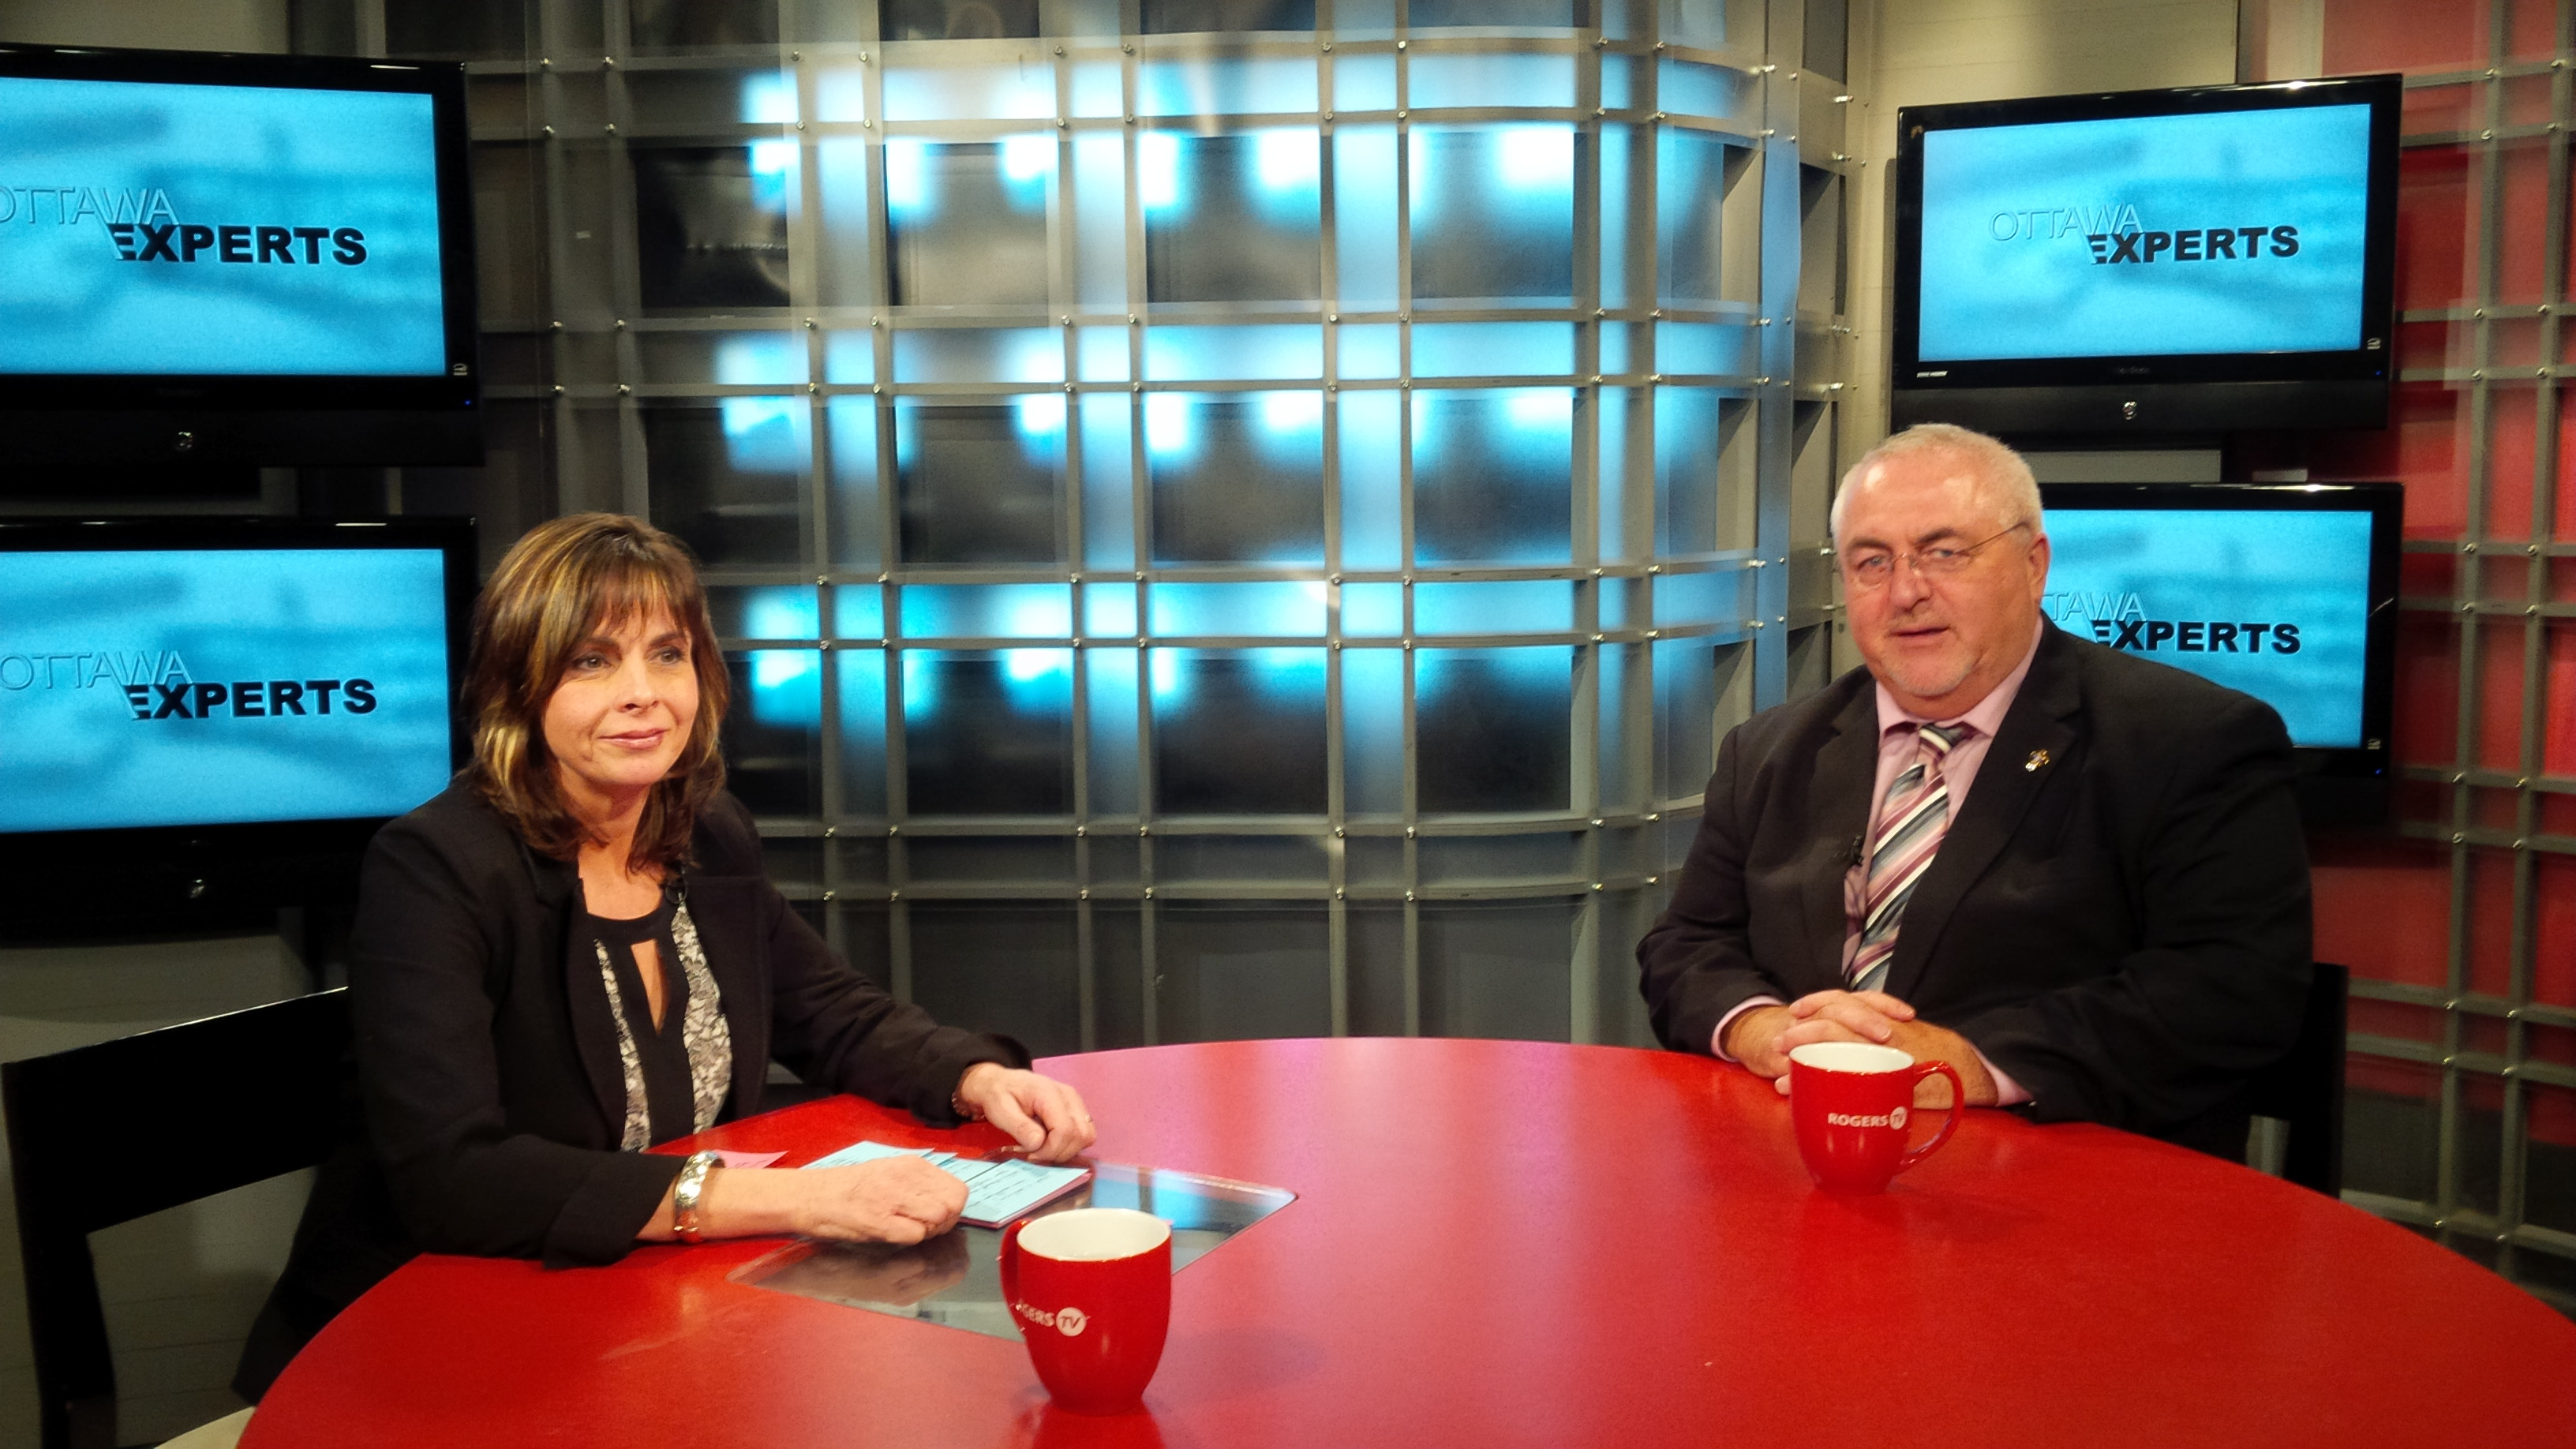 Rogers TV Ottawa Experts